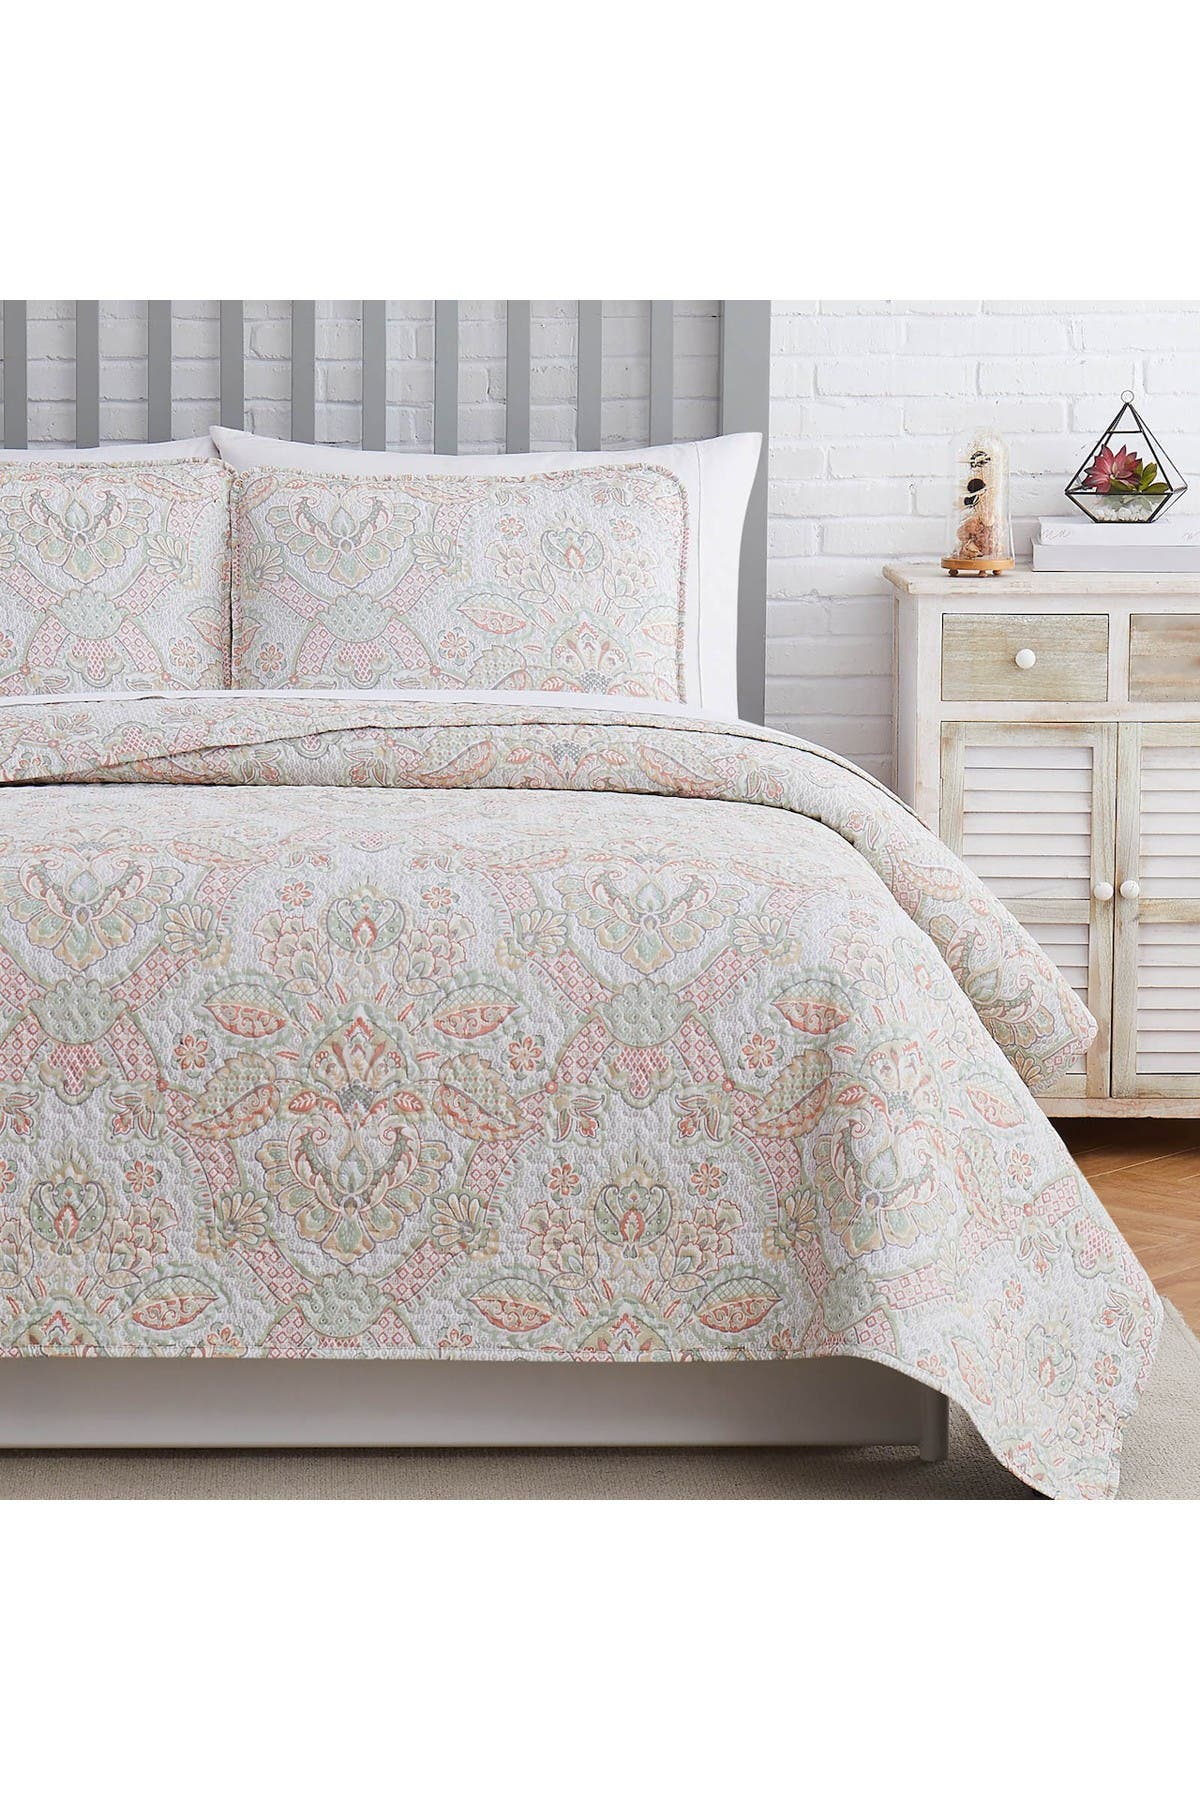 Image of SOUTHSHORE FINE LINENS Enchantment Oversized Quilt Cover Set - Coral - Full/Queen